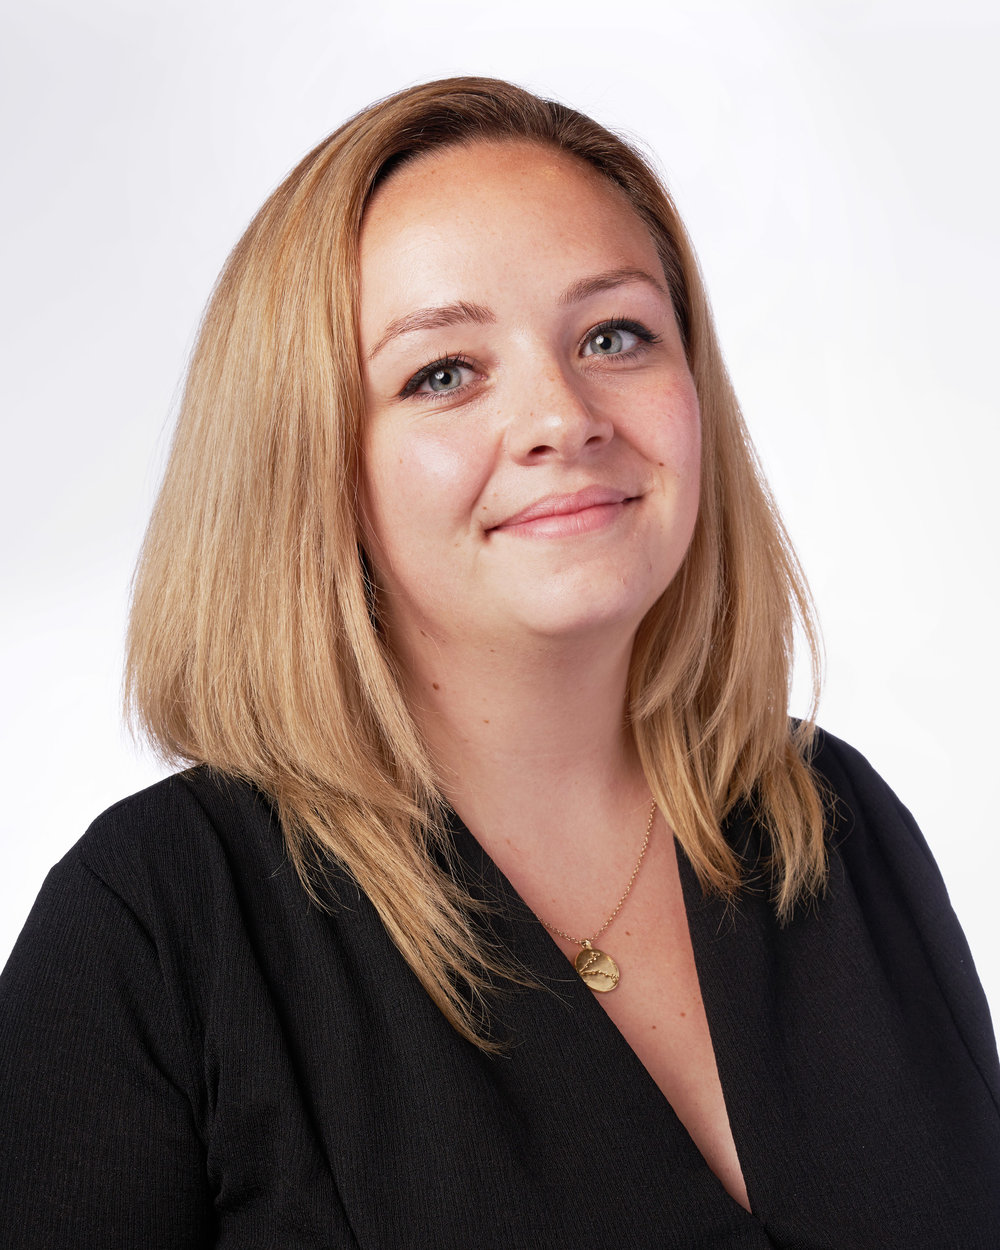 Laura Mahon, Director of Content Production